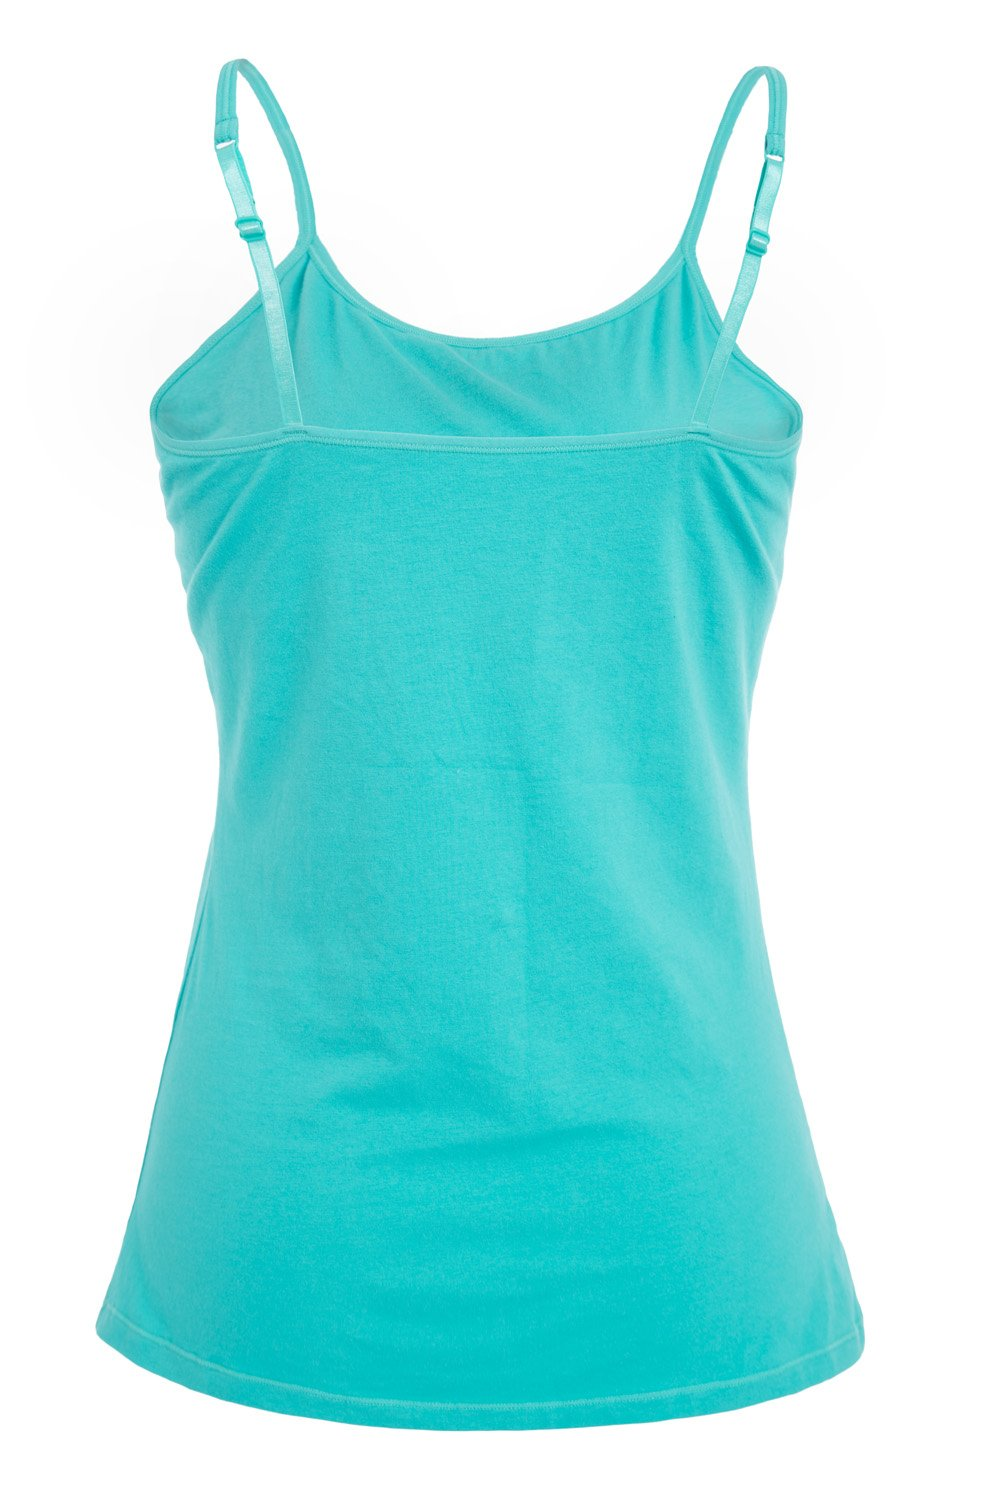 V FOR CITY Womens Active Basic Cami Cotton Tanks Top Camisole Base Layer Lingerie Aqua Black M by V FOR CITY (Image #3)